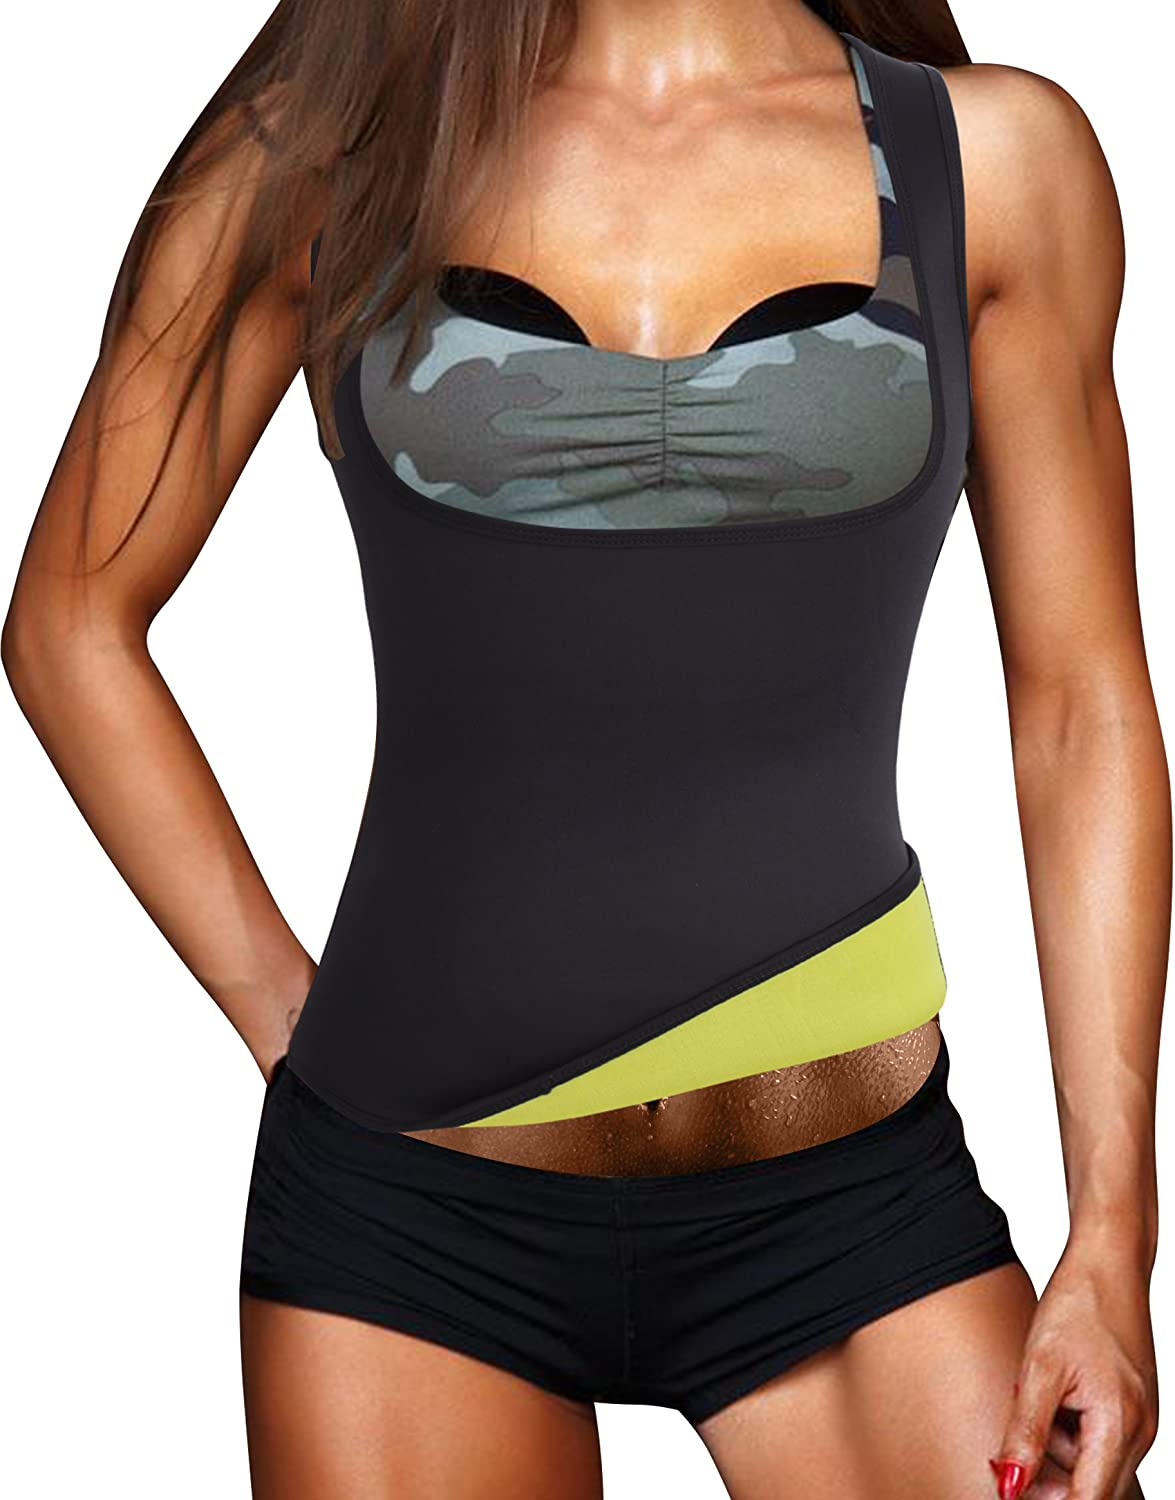 Eleady Womens Workout Waist Trimmer Hot Sweat Slimming Neoprene Shirt Vest Body Shapers